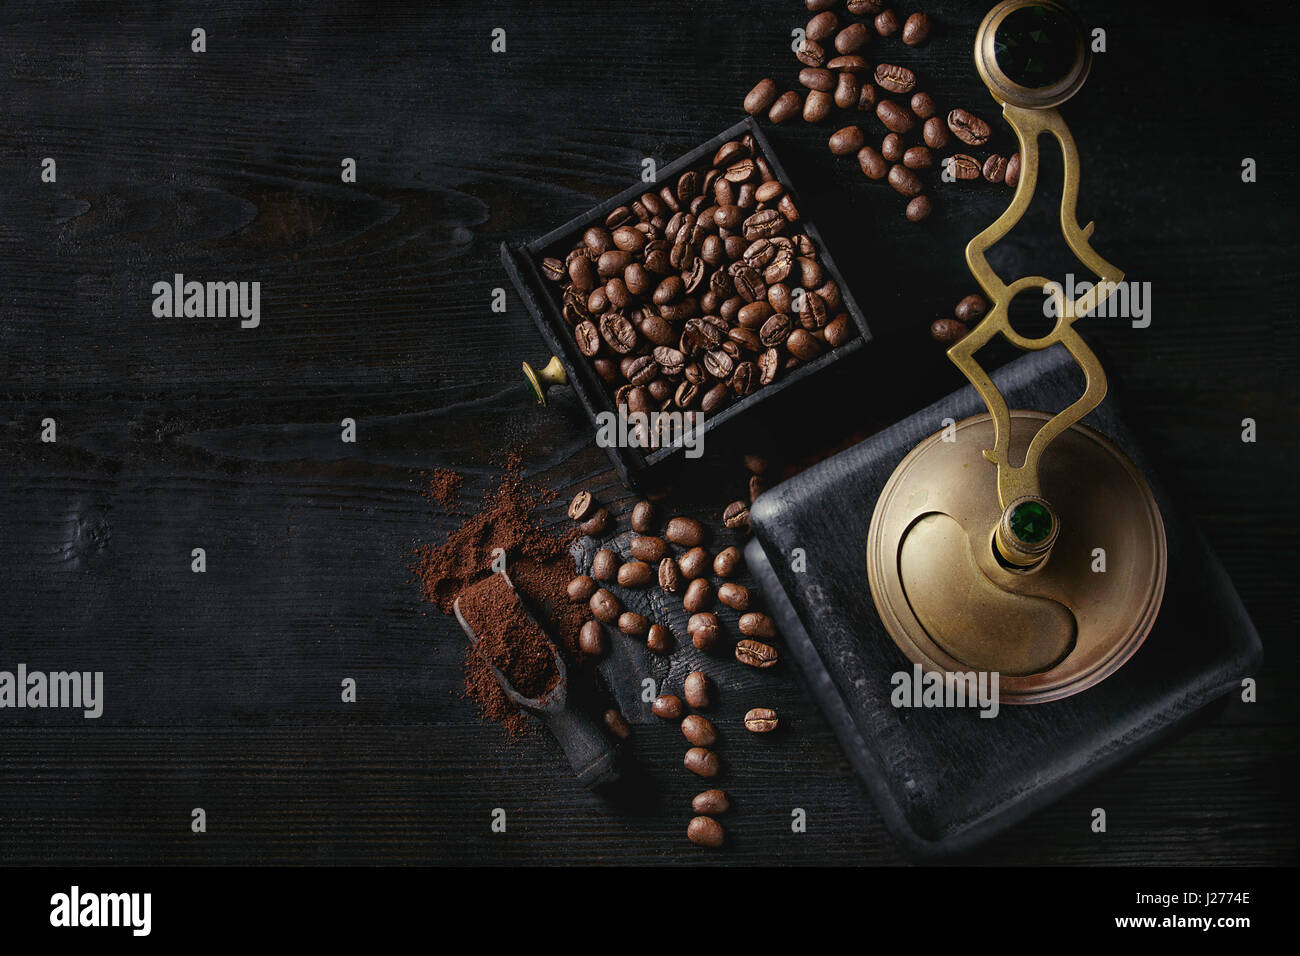 Roasted coffee beans and grind coffee in wood box with vintage coffee grinder and scoop over black wooden burnt - Stock Image